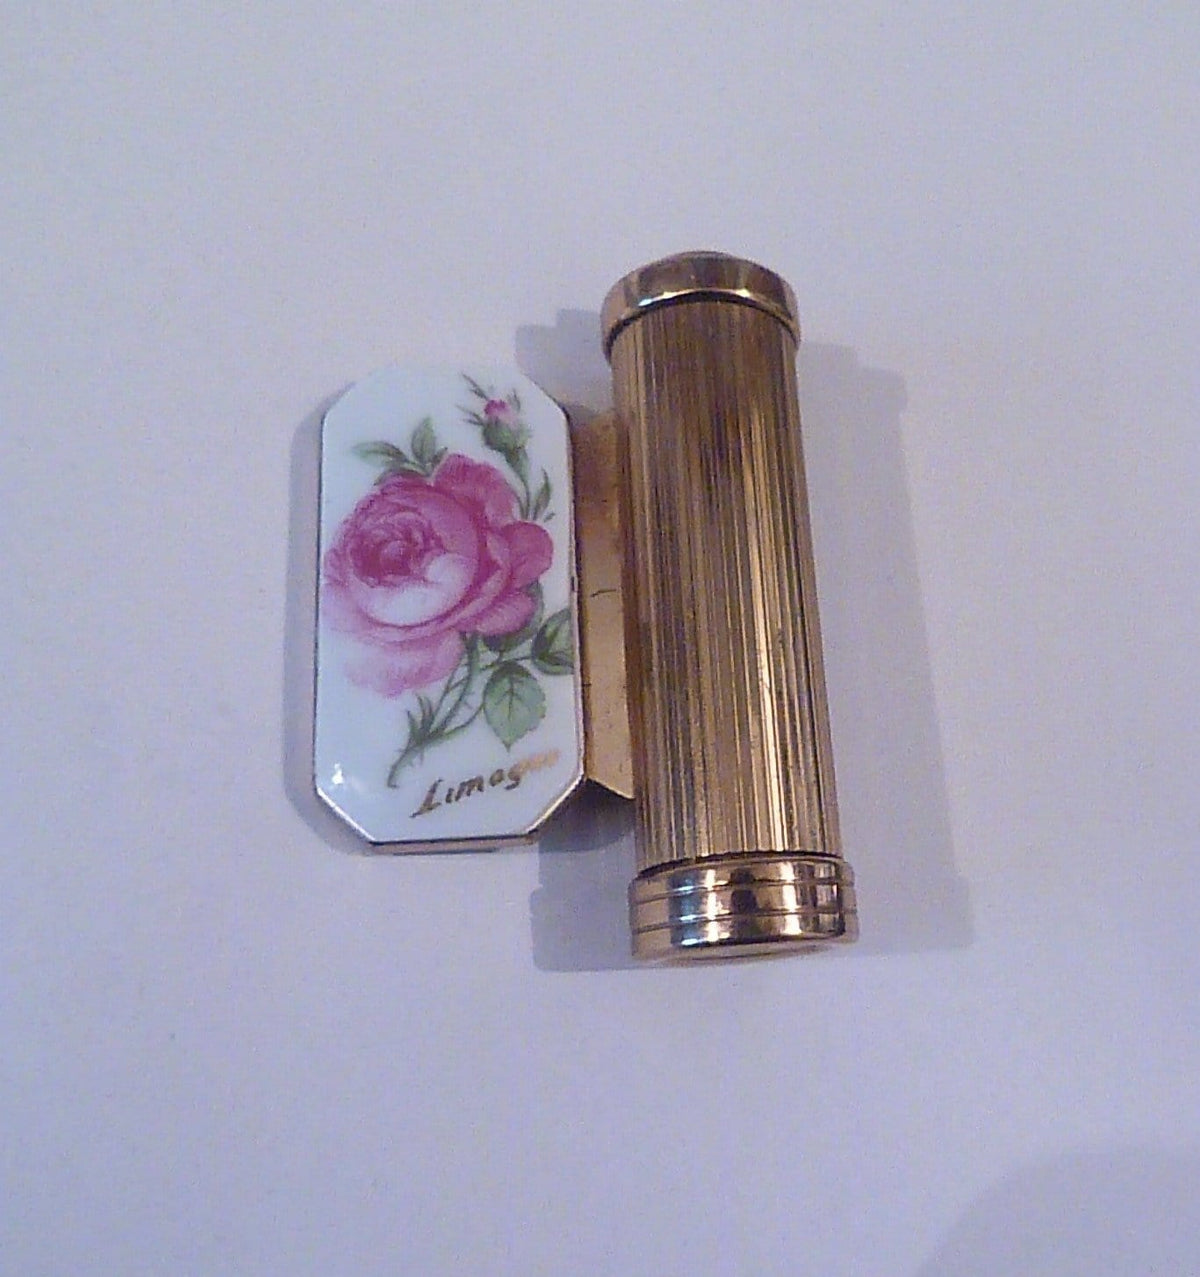 Vintage Valentine's Day Gifts 1950s Lipstick - The Vintage Compact Shop